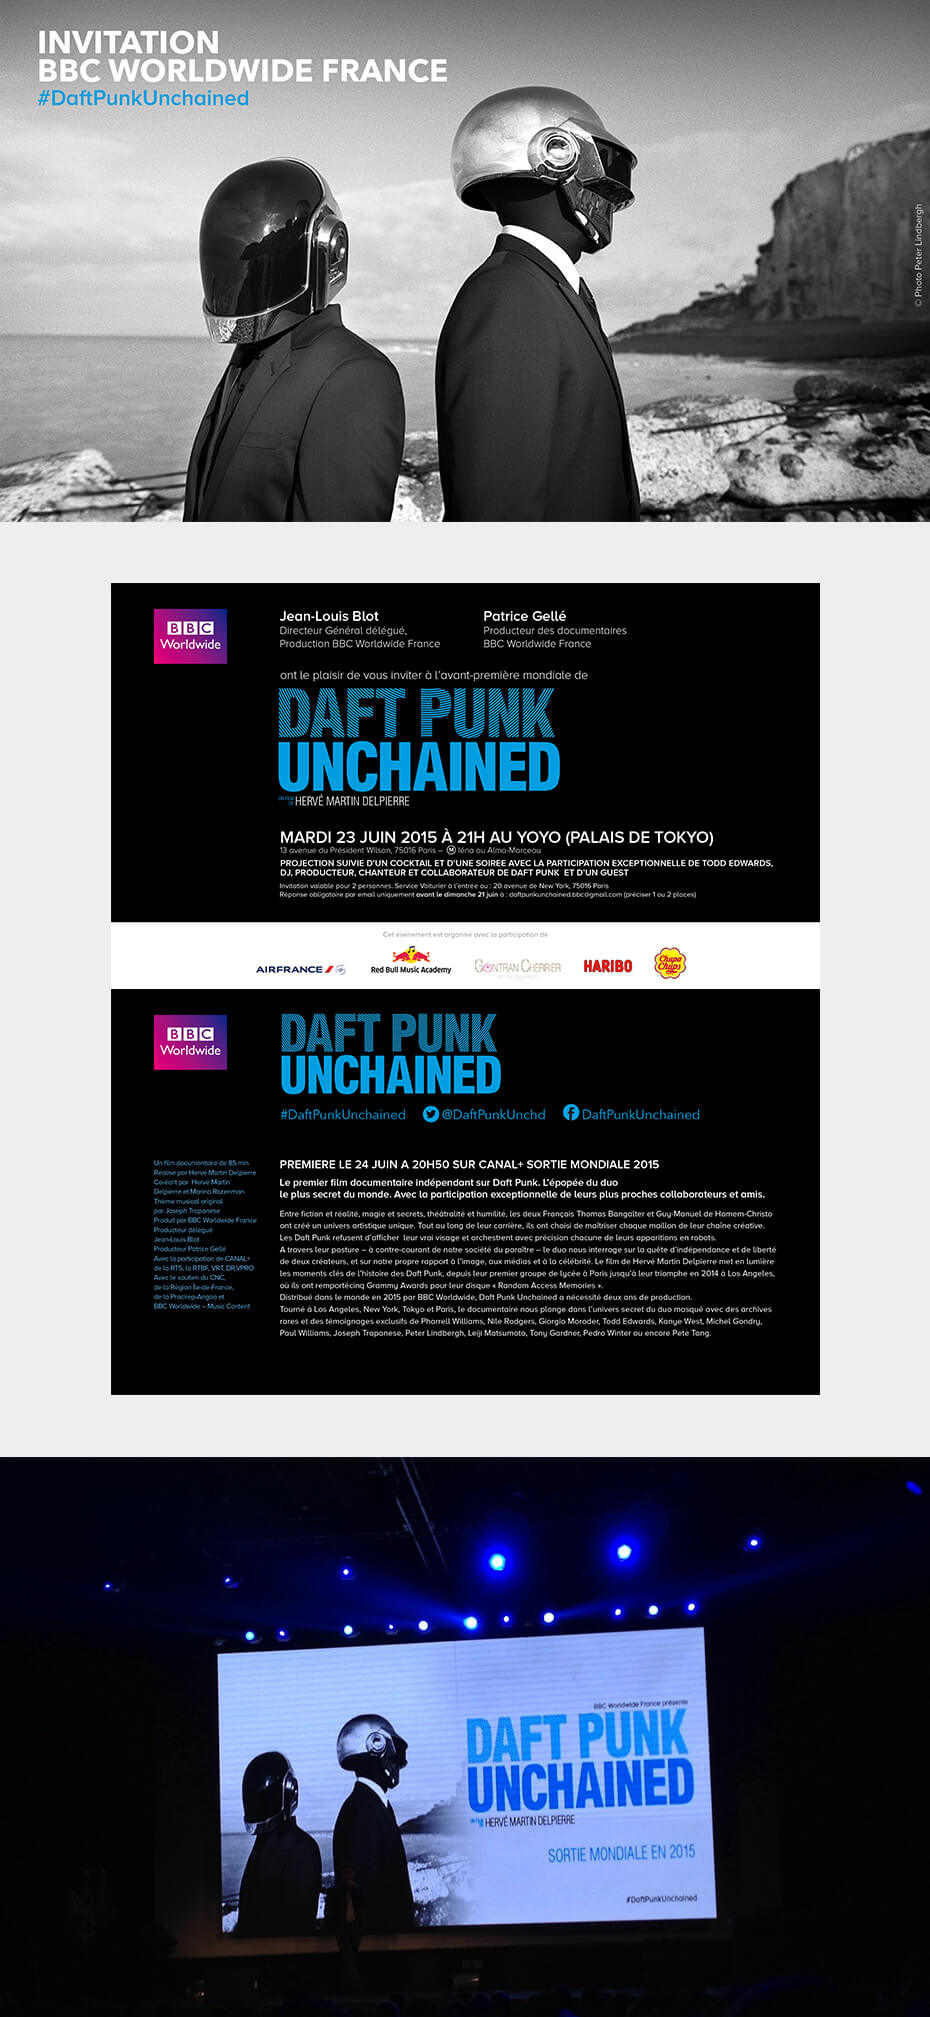 Invitation pour la projection Daft Punk Unchained